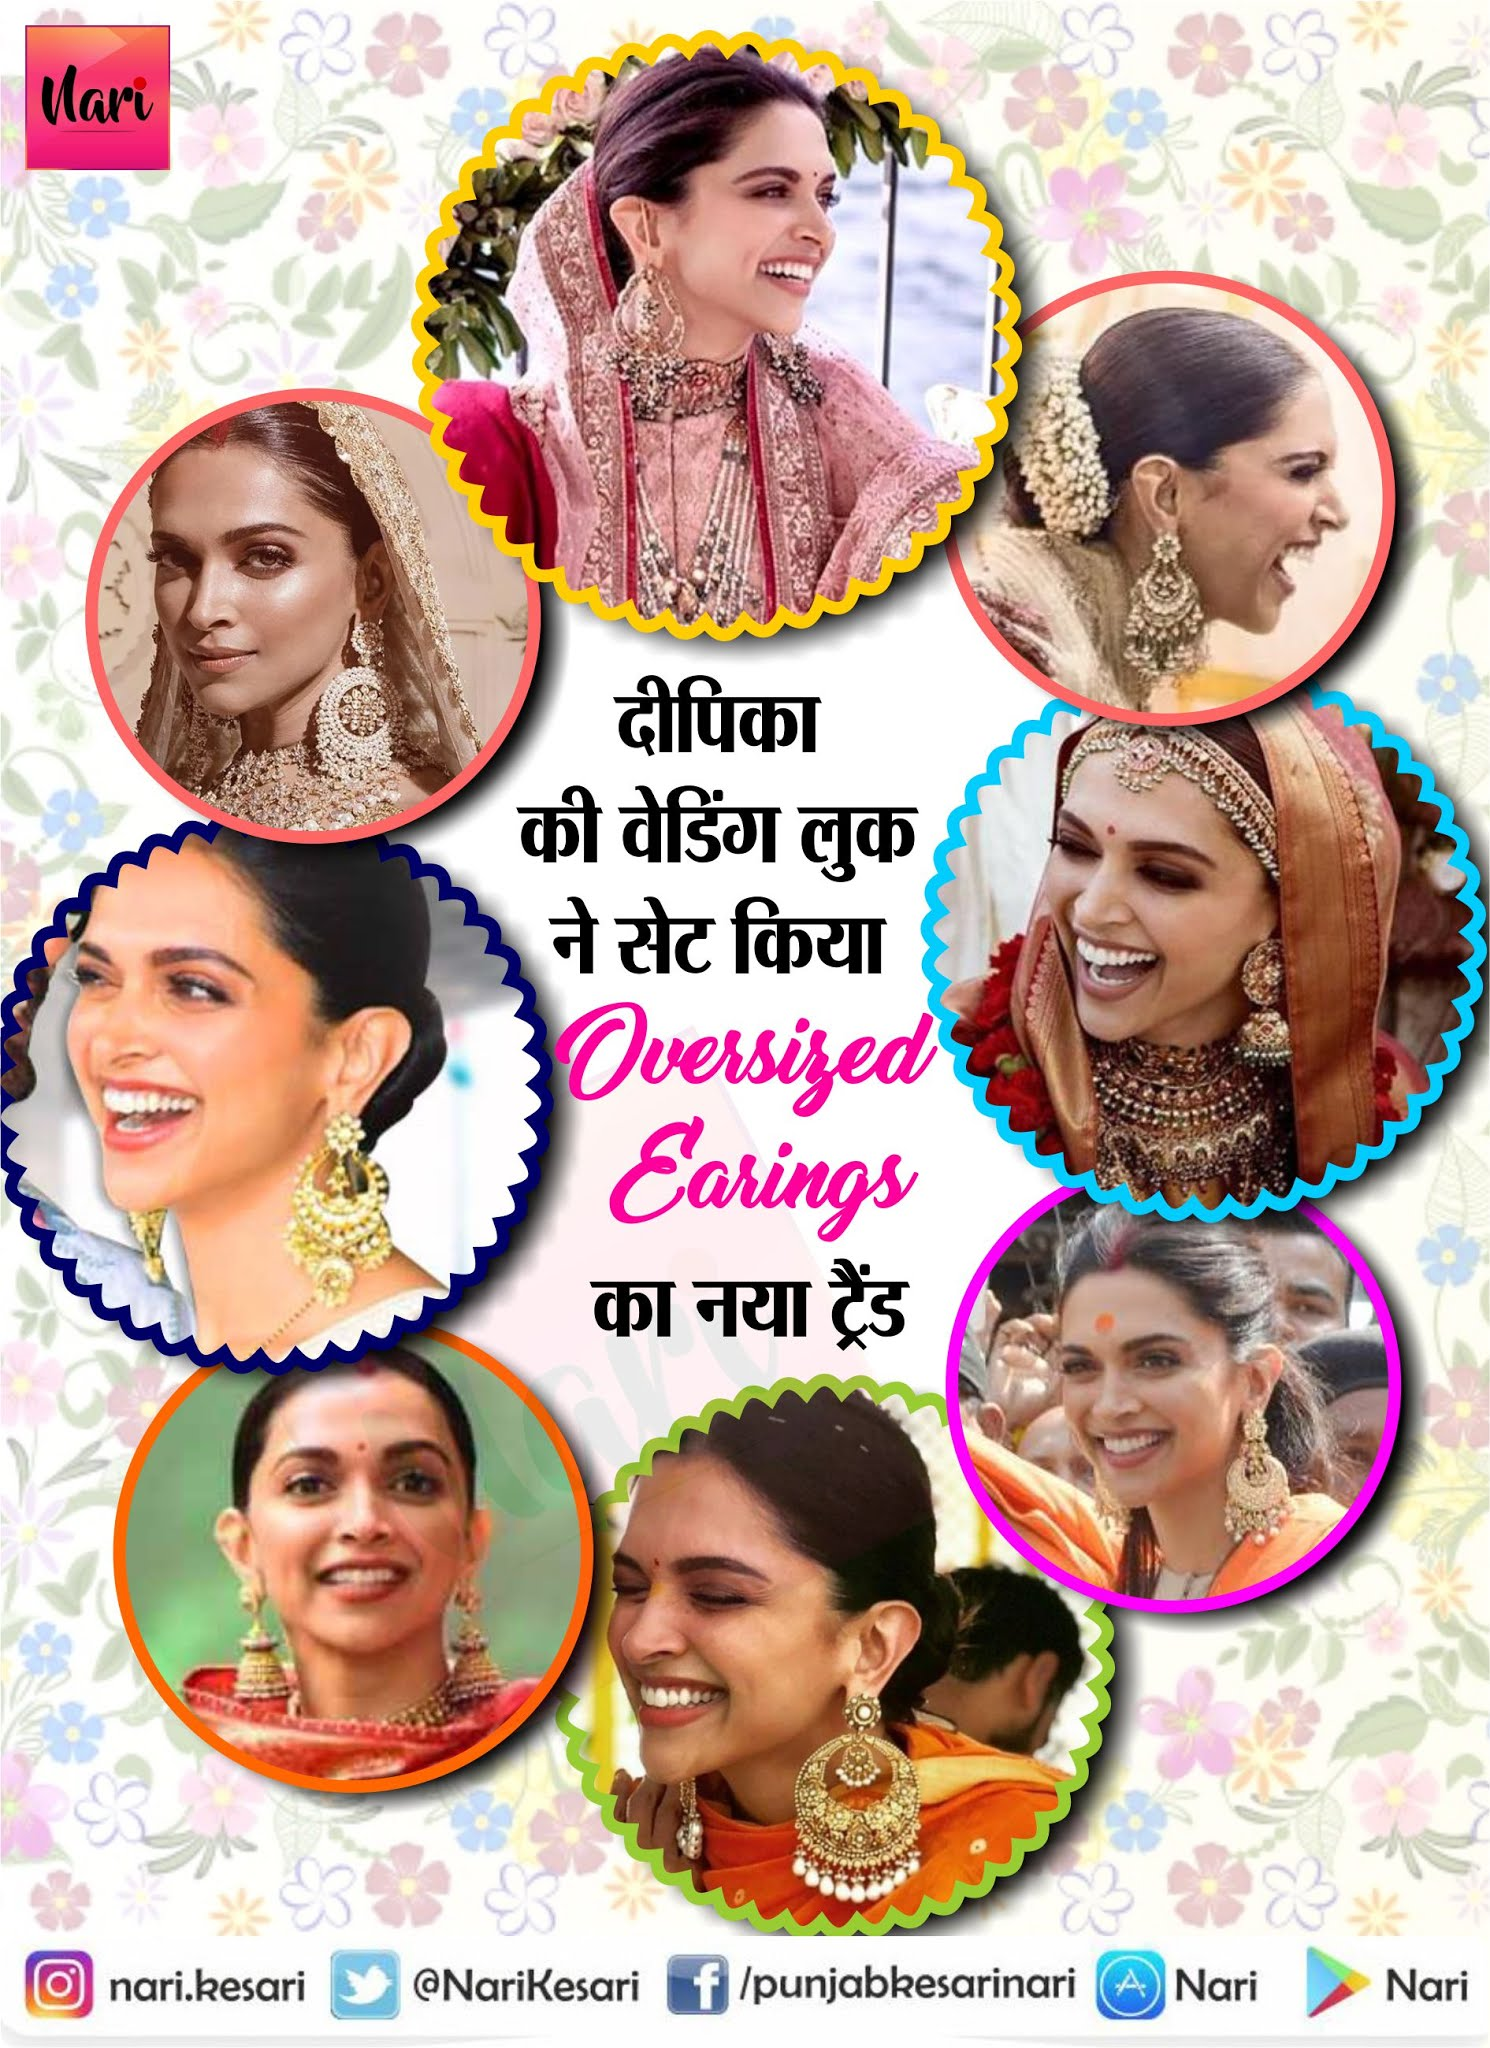 PunjabKesari,ओवरसाइज्ड ईयररिंग्स  इमेज, Deepika Padukone oversized earrings Image, Deepveer Wedding image